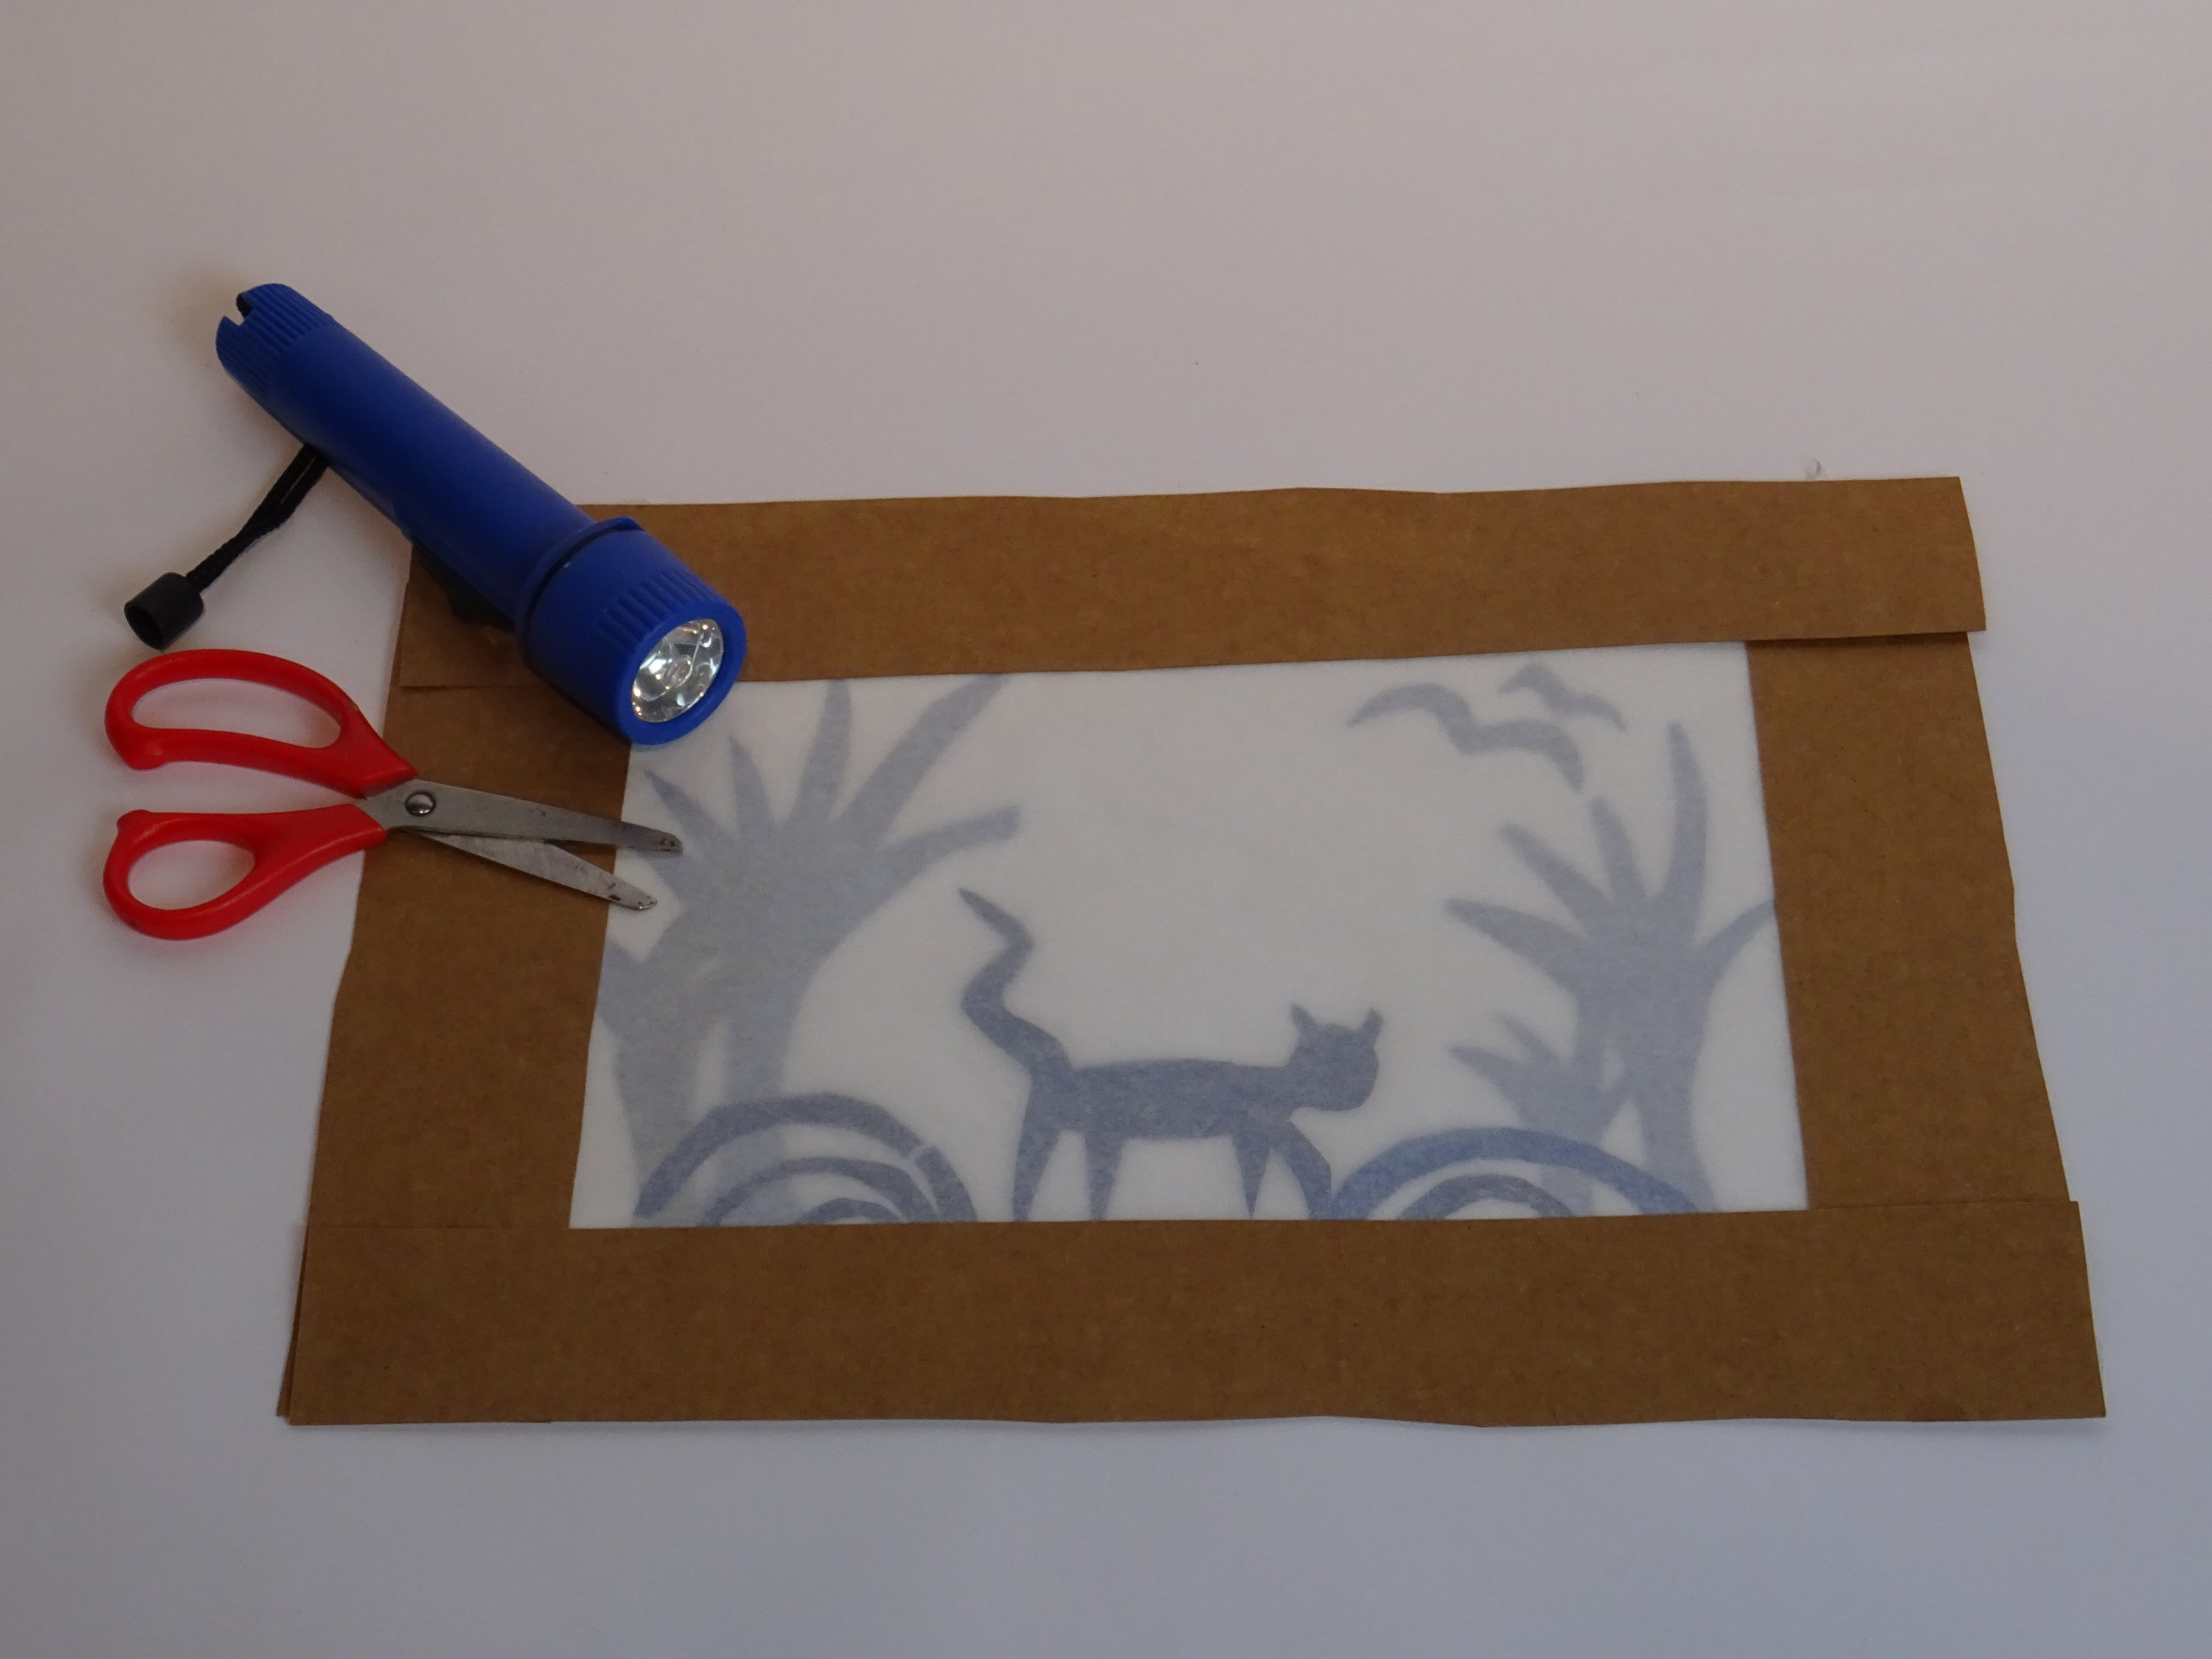 In the Art with Shadows workshop, children observe how their work changes in different lights